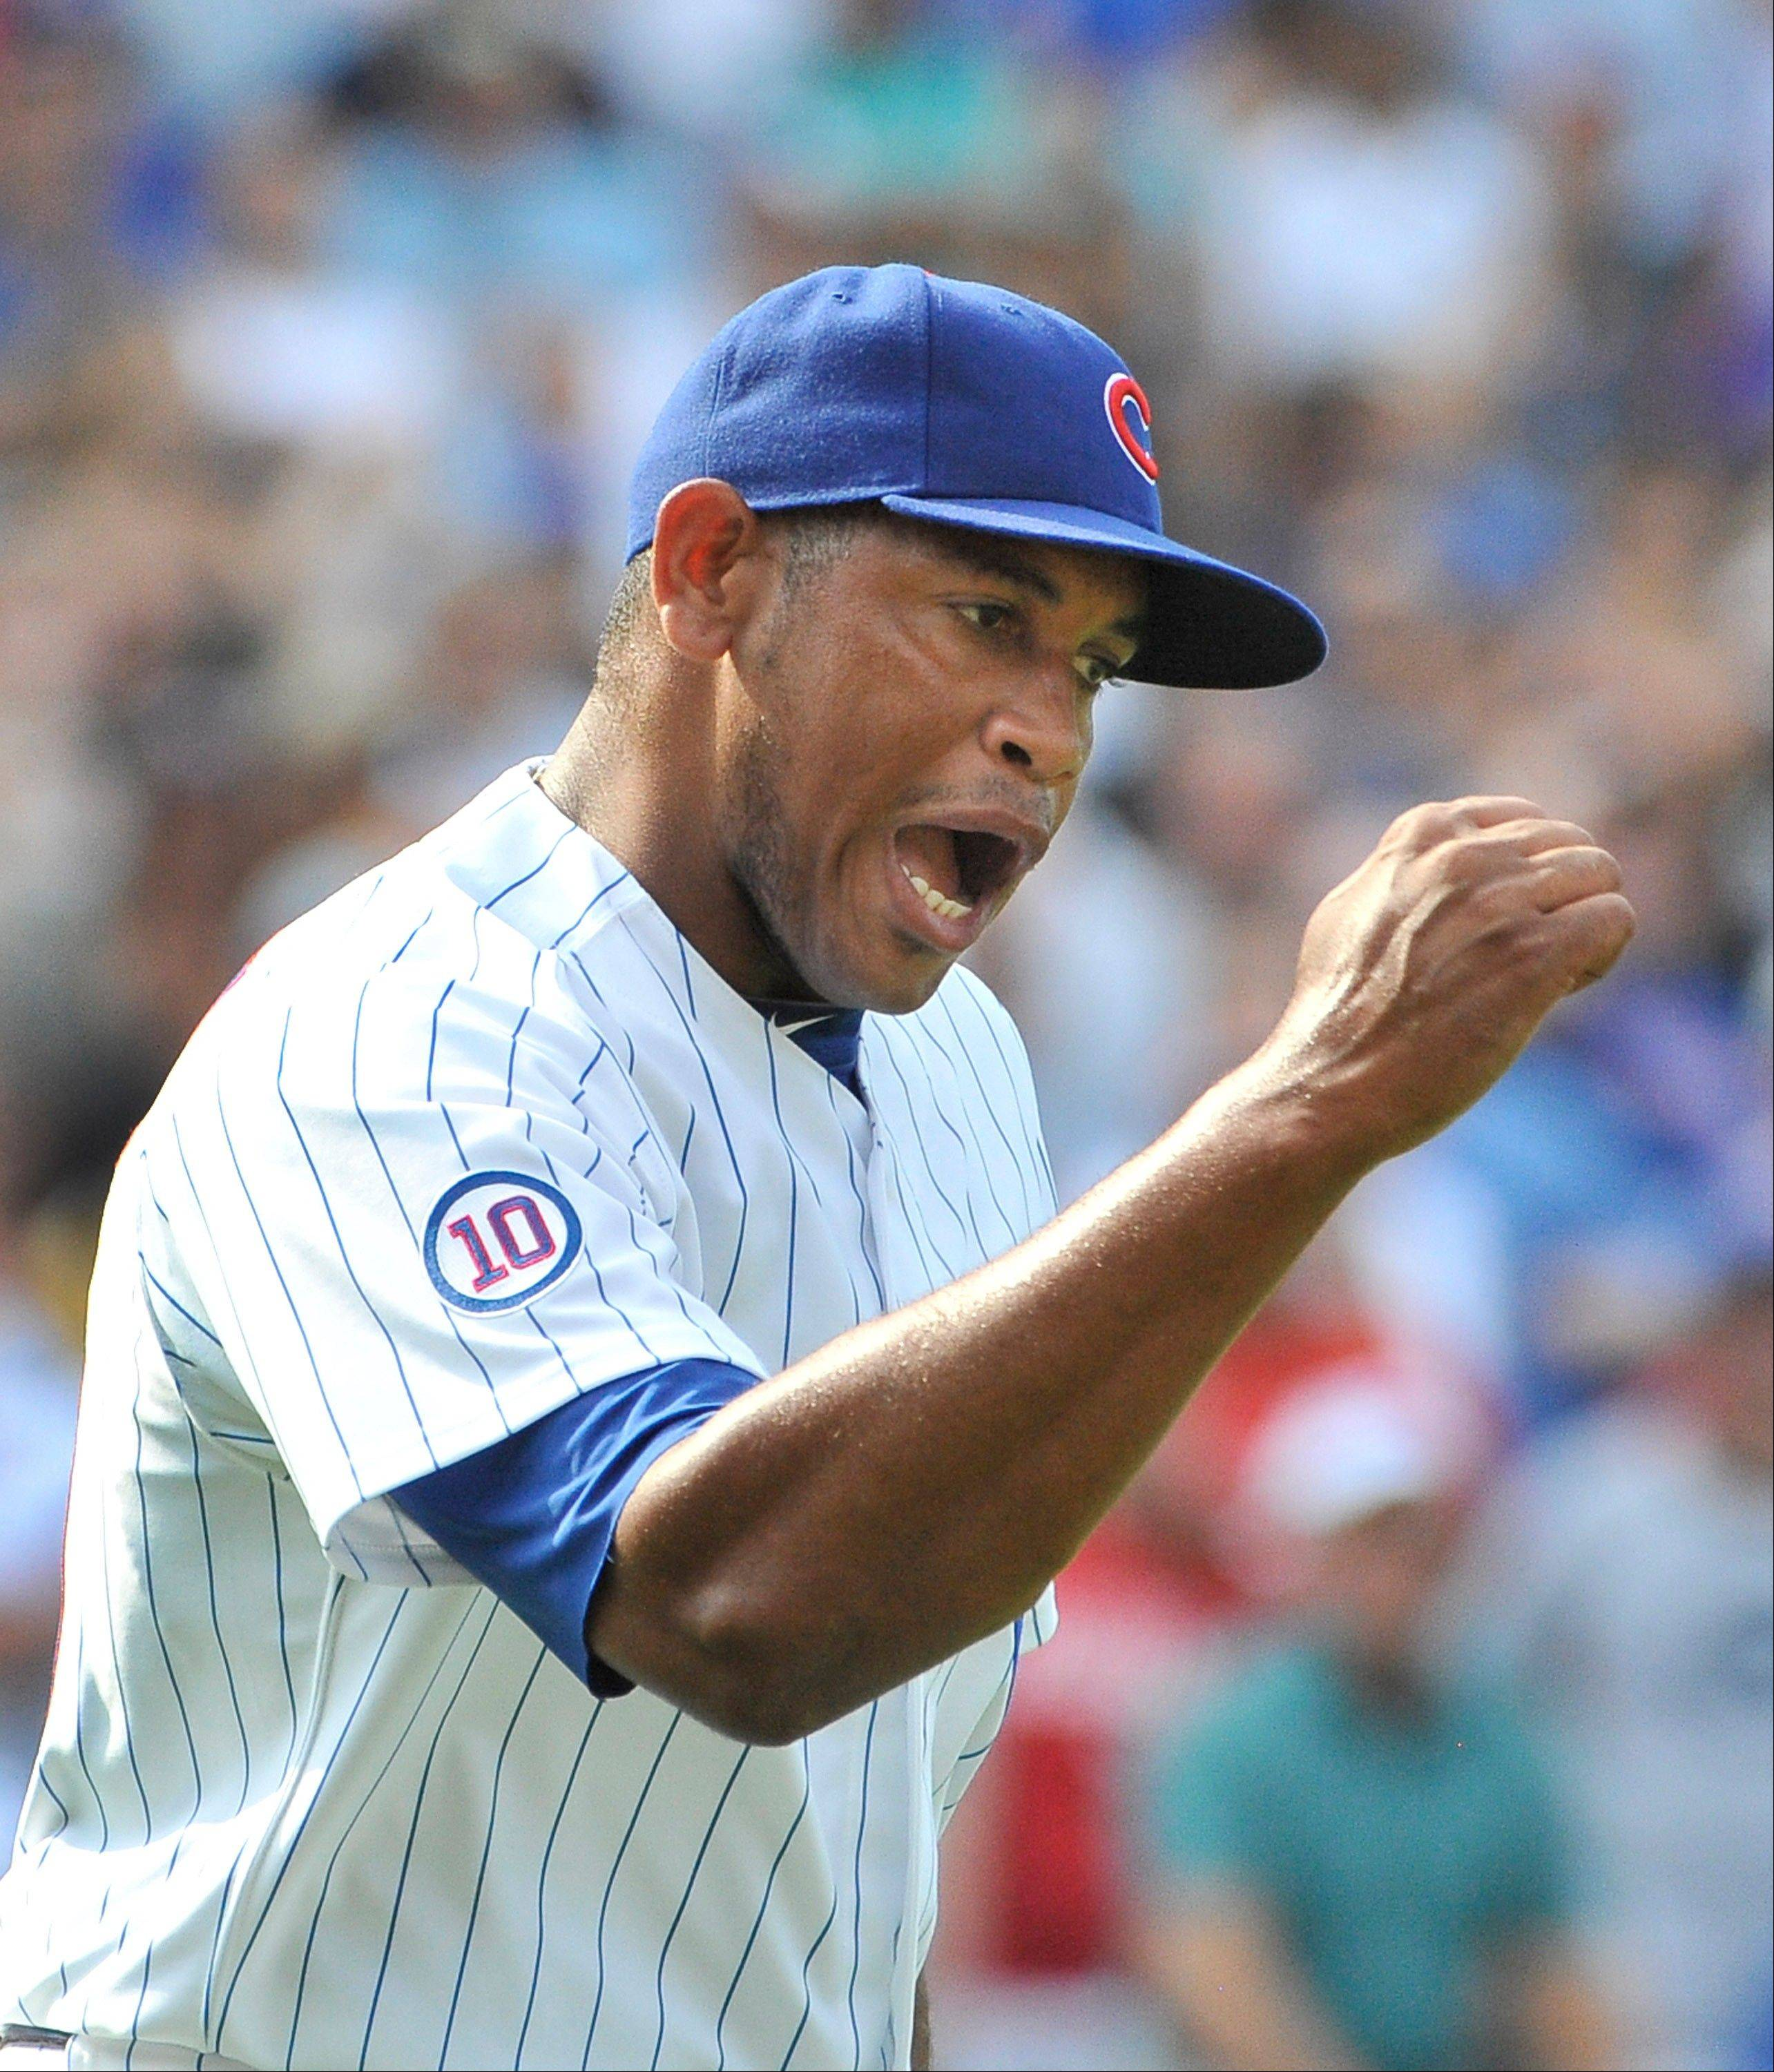 Carlos Marmol notched his 24th save Friday by holding off the Reds in a 4-3 Cubs victory.